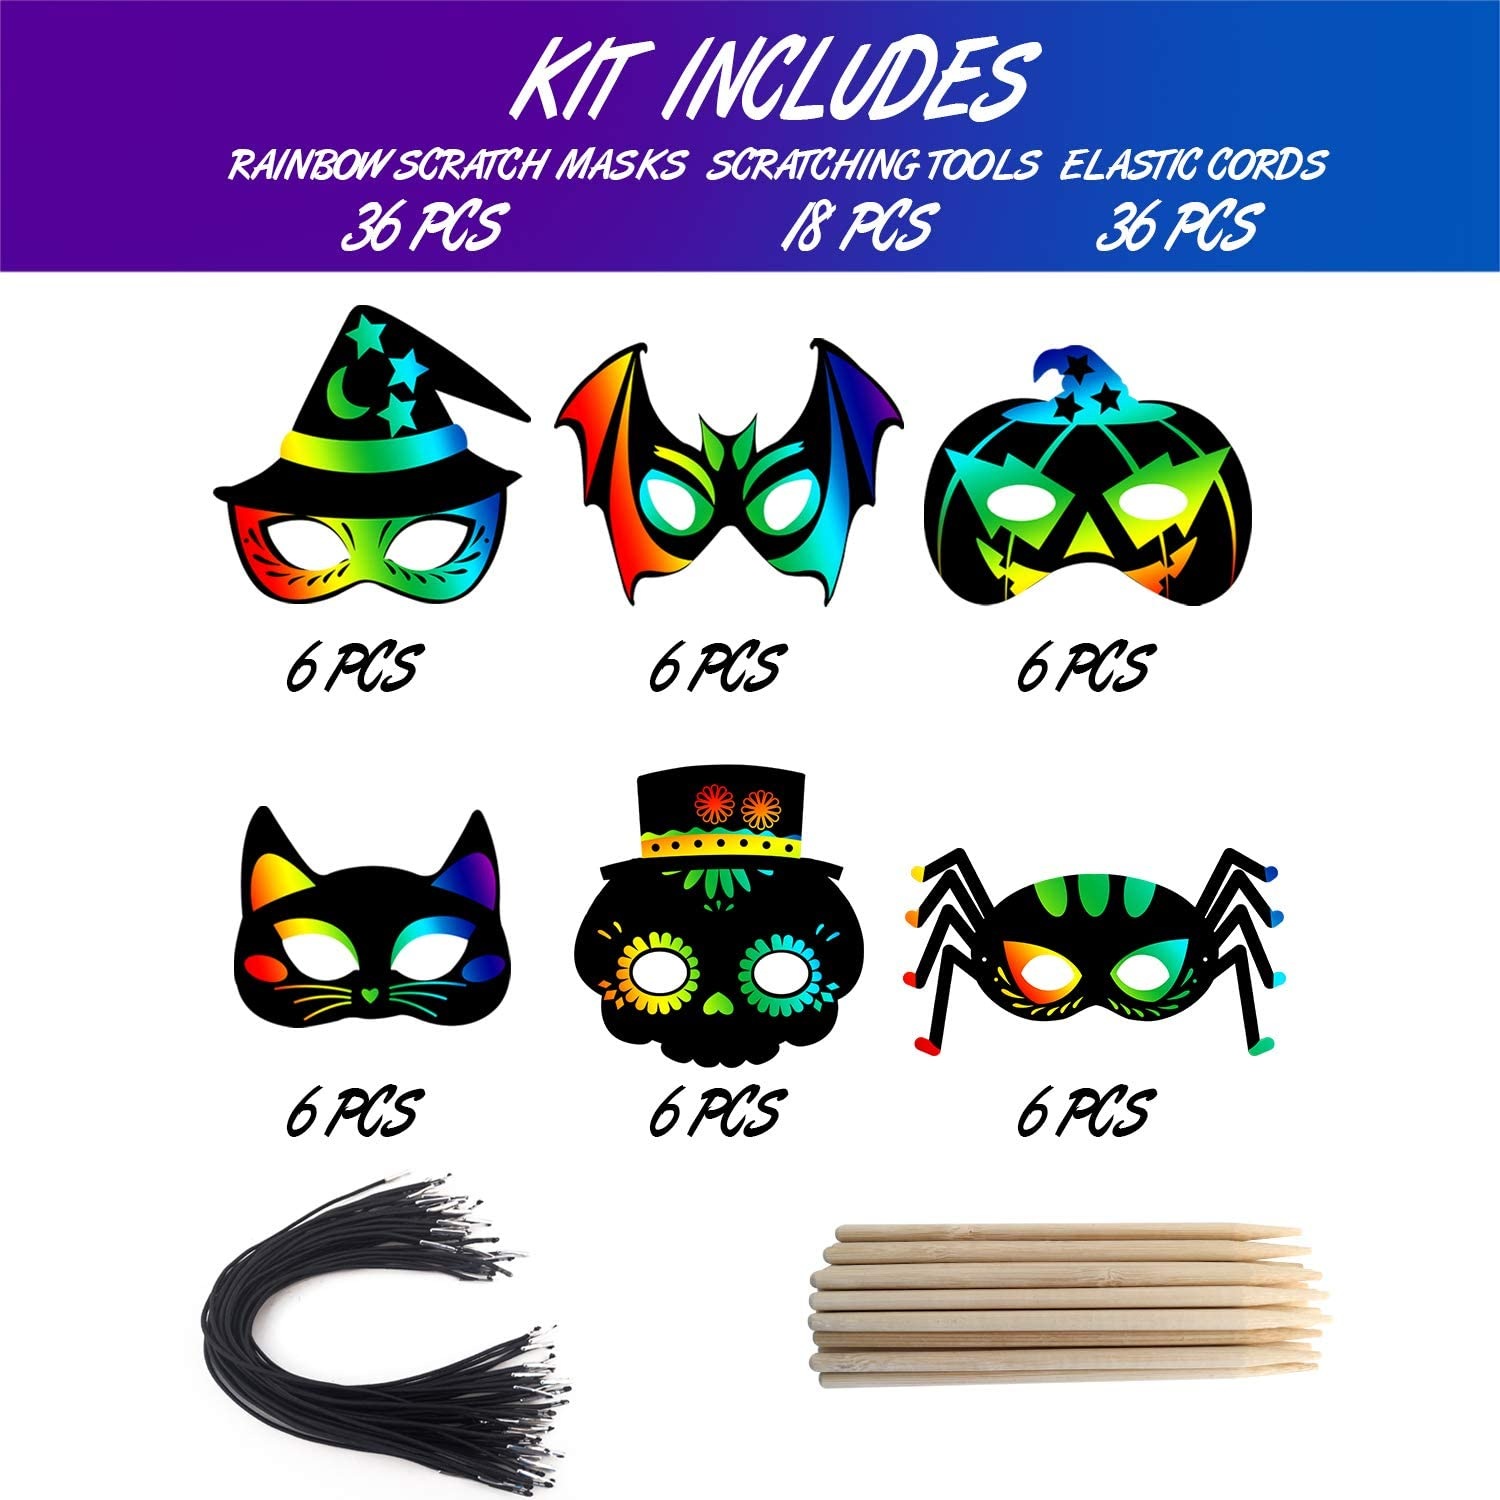 OuMuaMua 30PCS Halloween Rainbow Scratch Mask Art Craft Kit Bat Witch Pumpkin Zombie Pirate Skull Scratch Paper Art Mask for Halloween Party Crafts Classroom Decorations